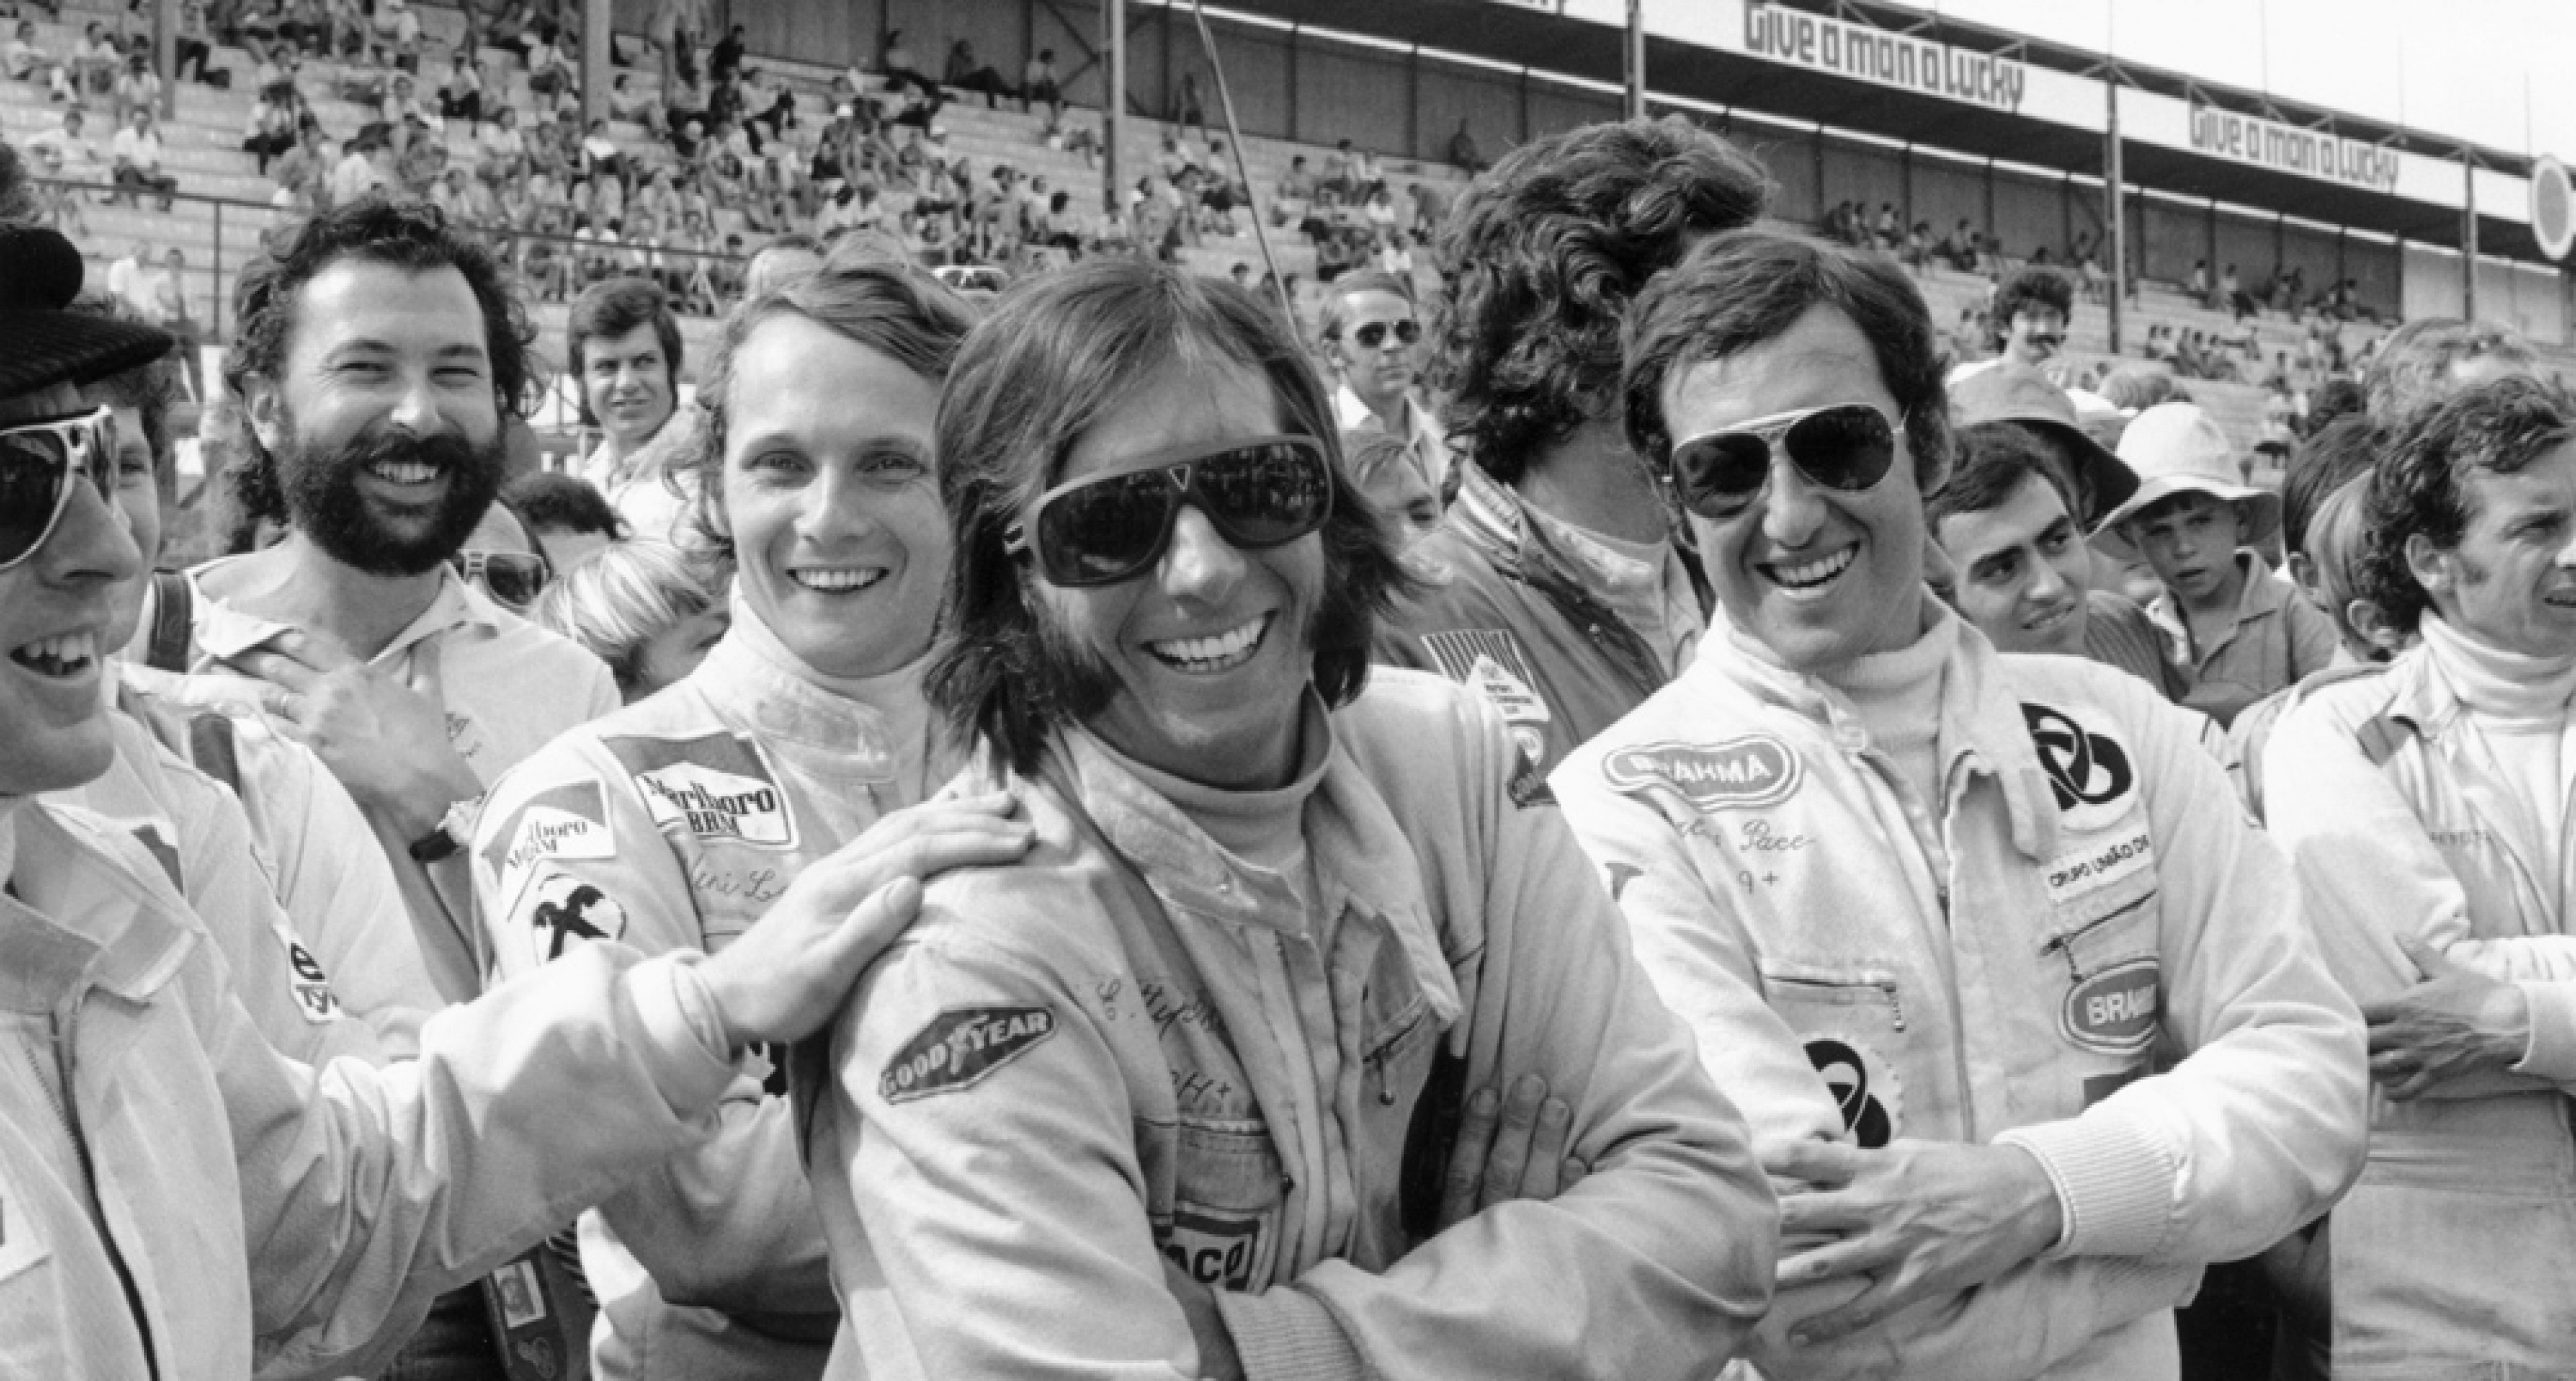 South African Grand Prix at Kyalami, 3 March 1973: Sir Jackie Stewart, Niki Lauda, Emerson Fittipaldi, Carlos Pace and Jean-Pierre Beltoise are having a good time.